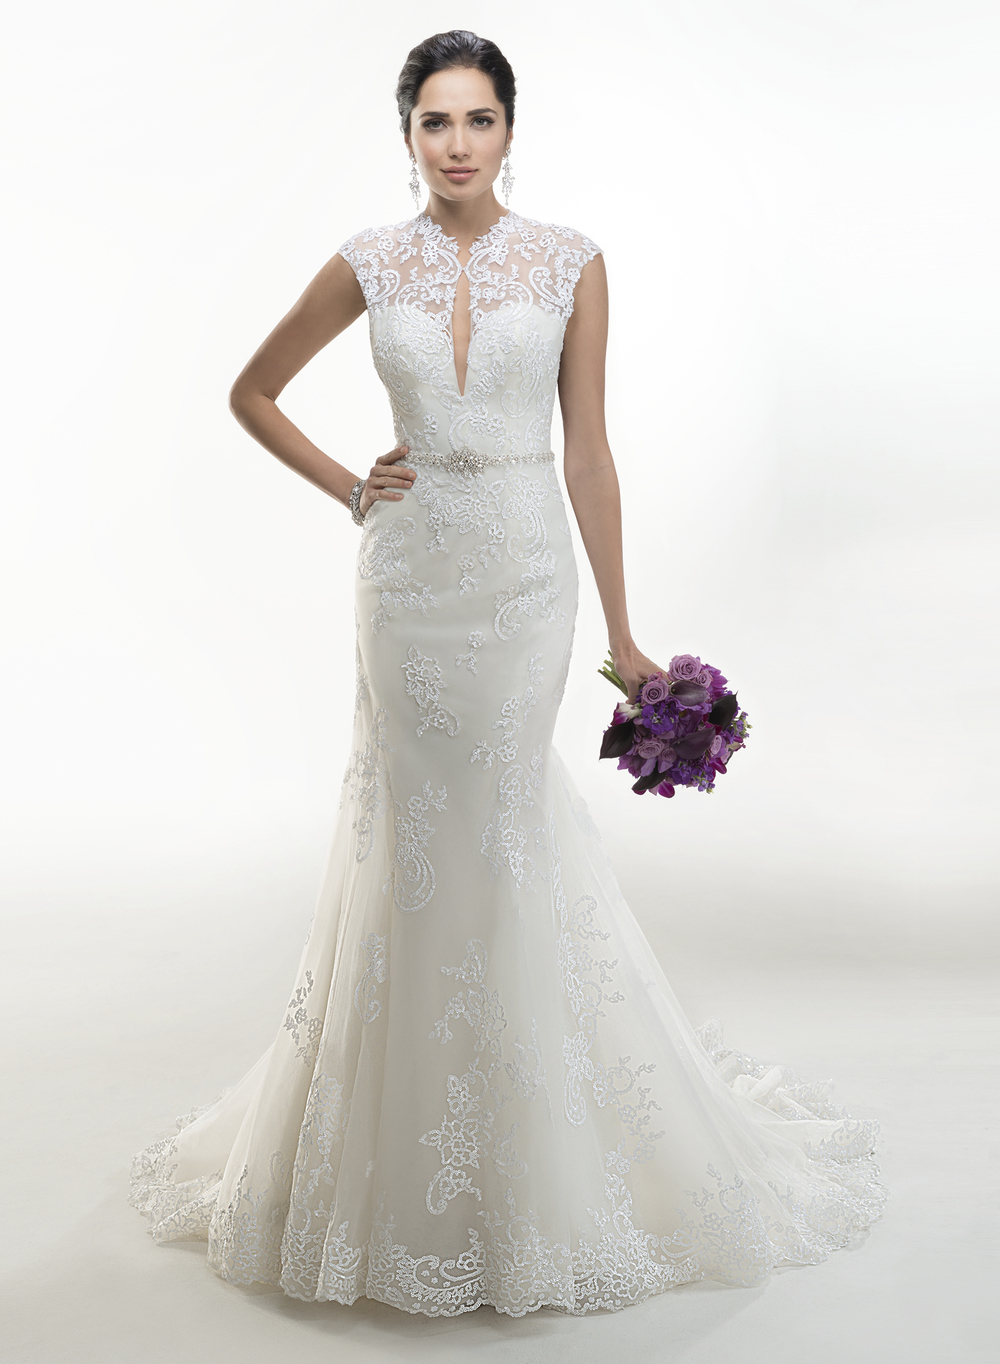 Kiana Dress from Maggie Sottero